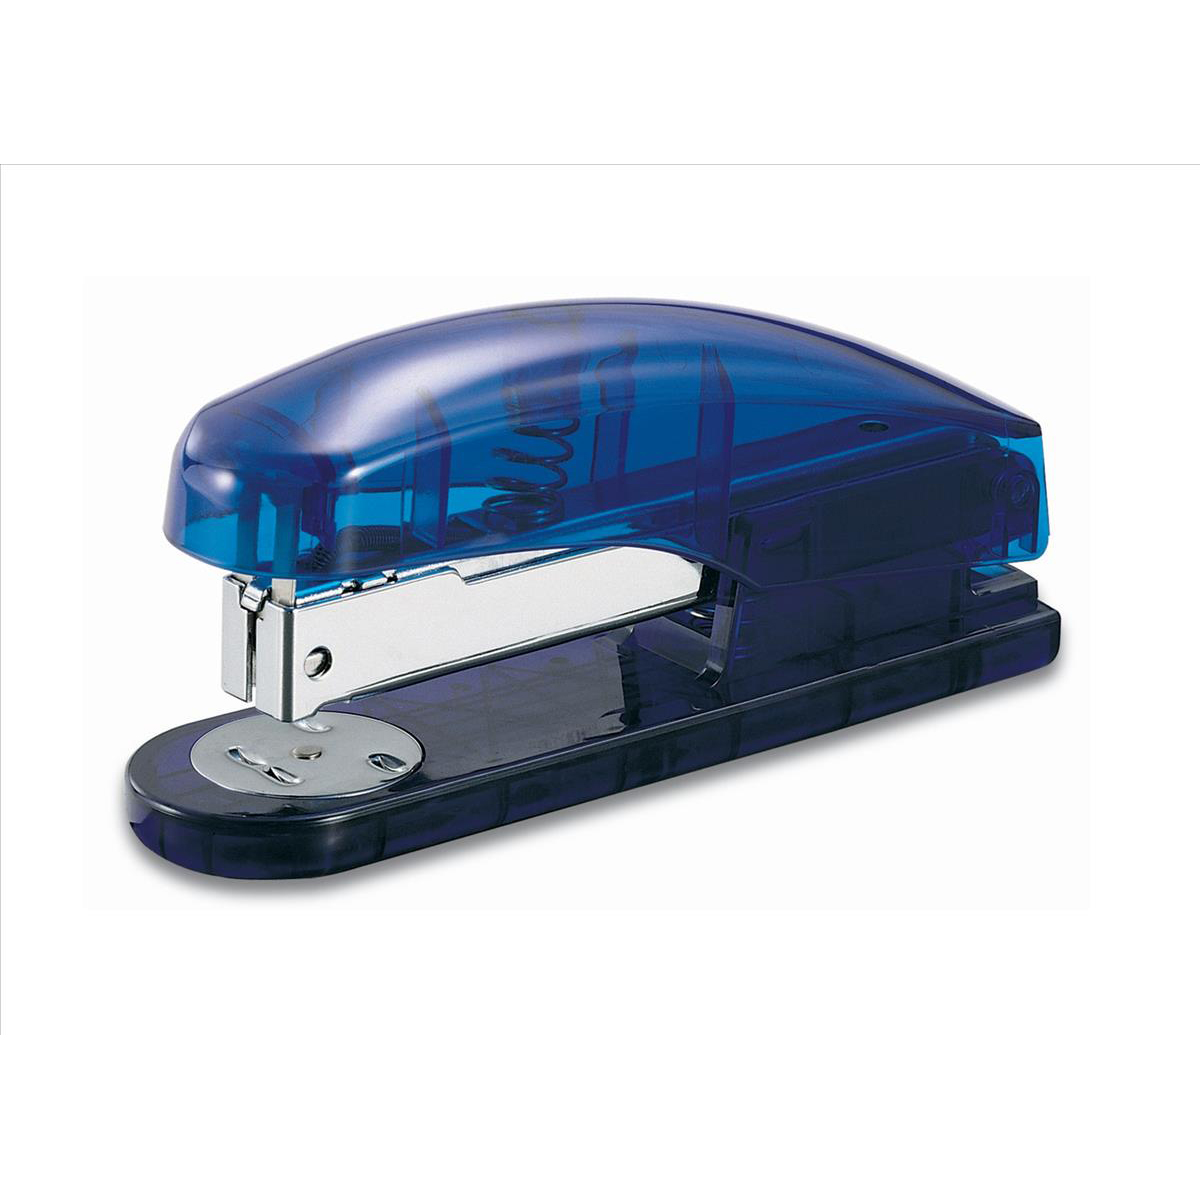 Desktop Staplers 5 Star Office Half Strip Stapler 20 Sheets Blue Transparent